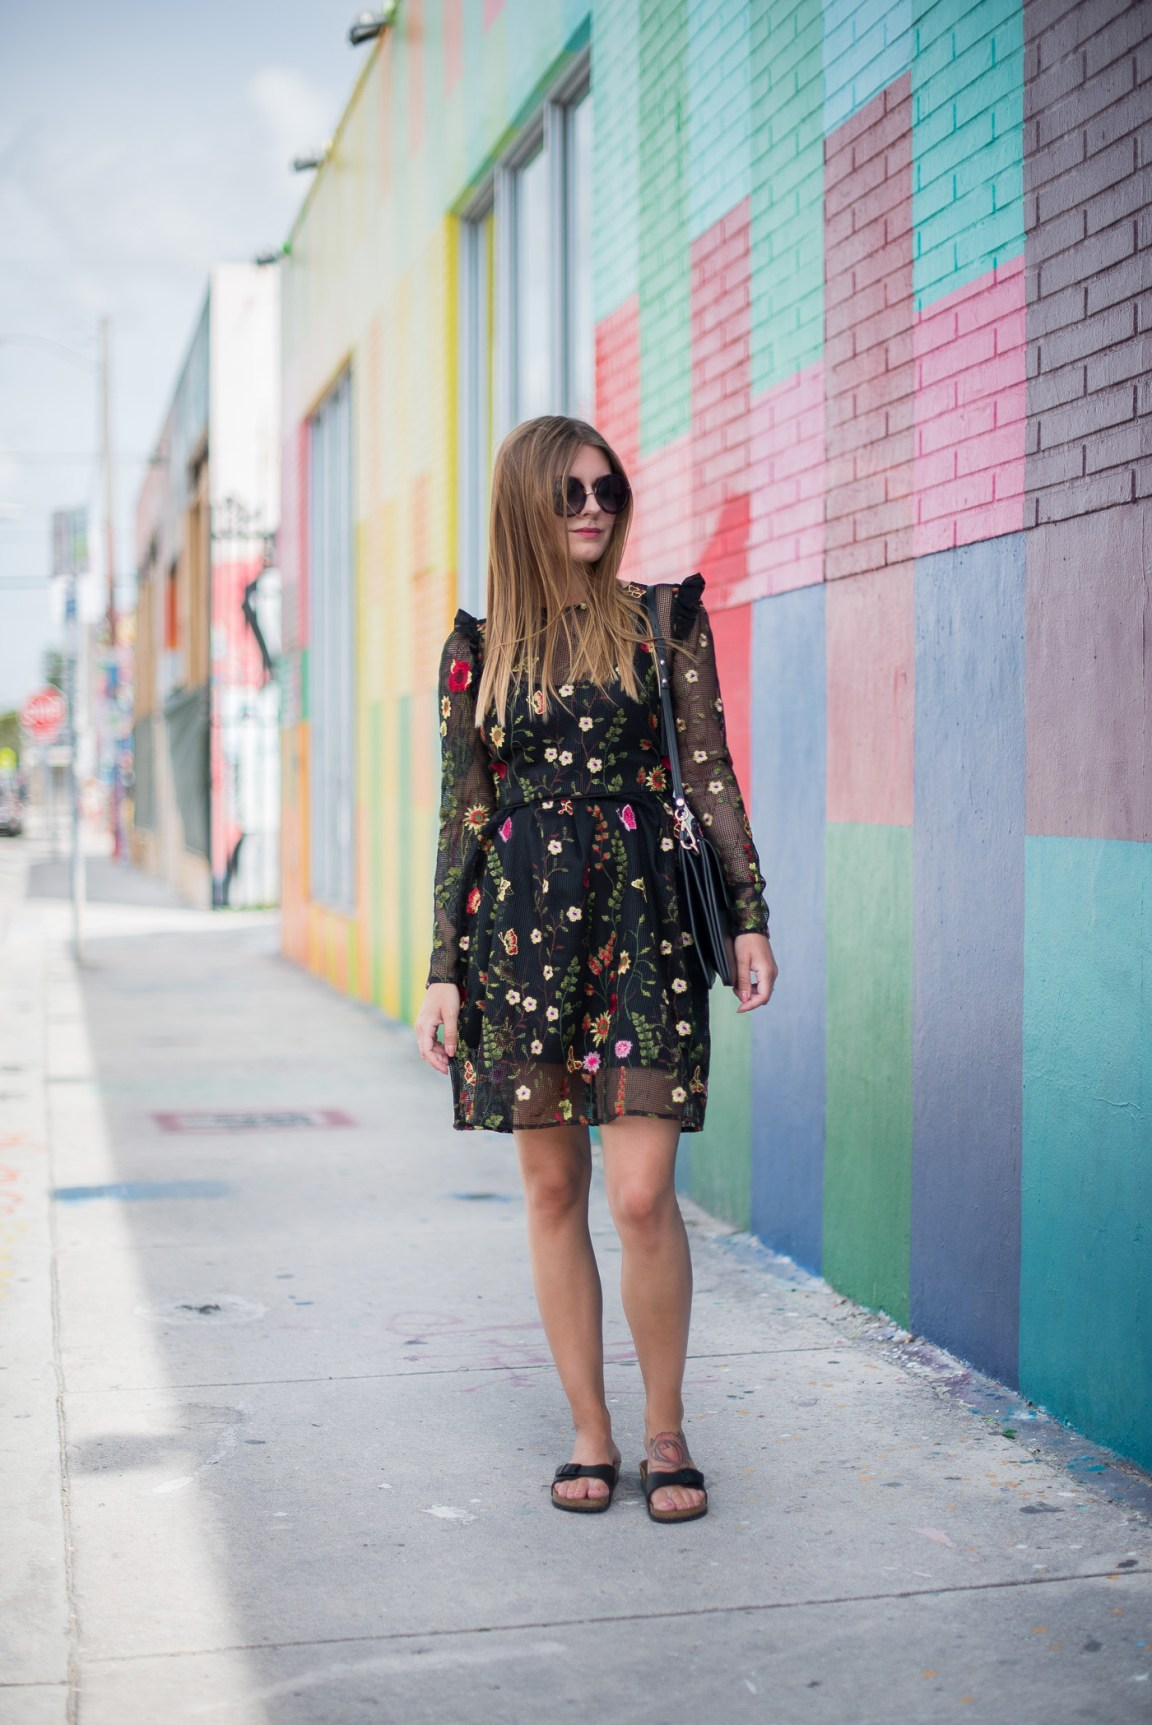 miami_wynwood_walls_flower_print_dress_6